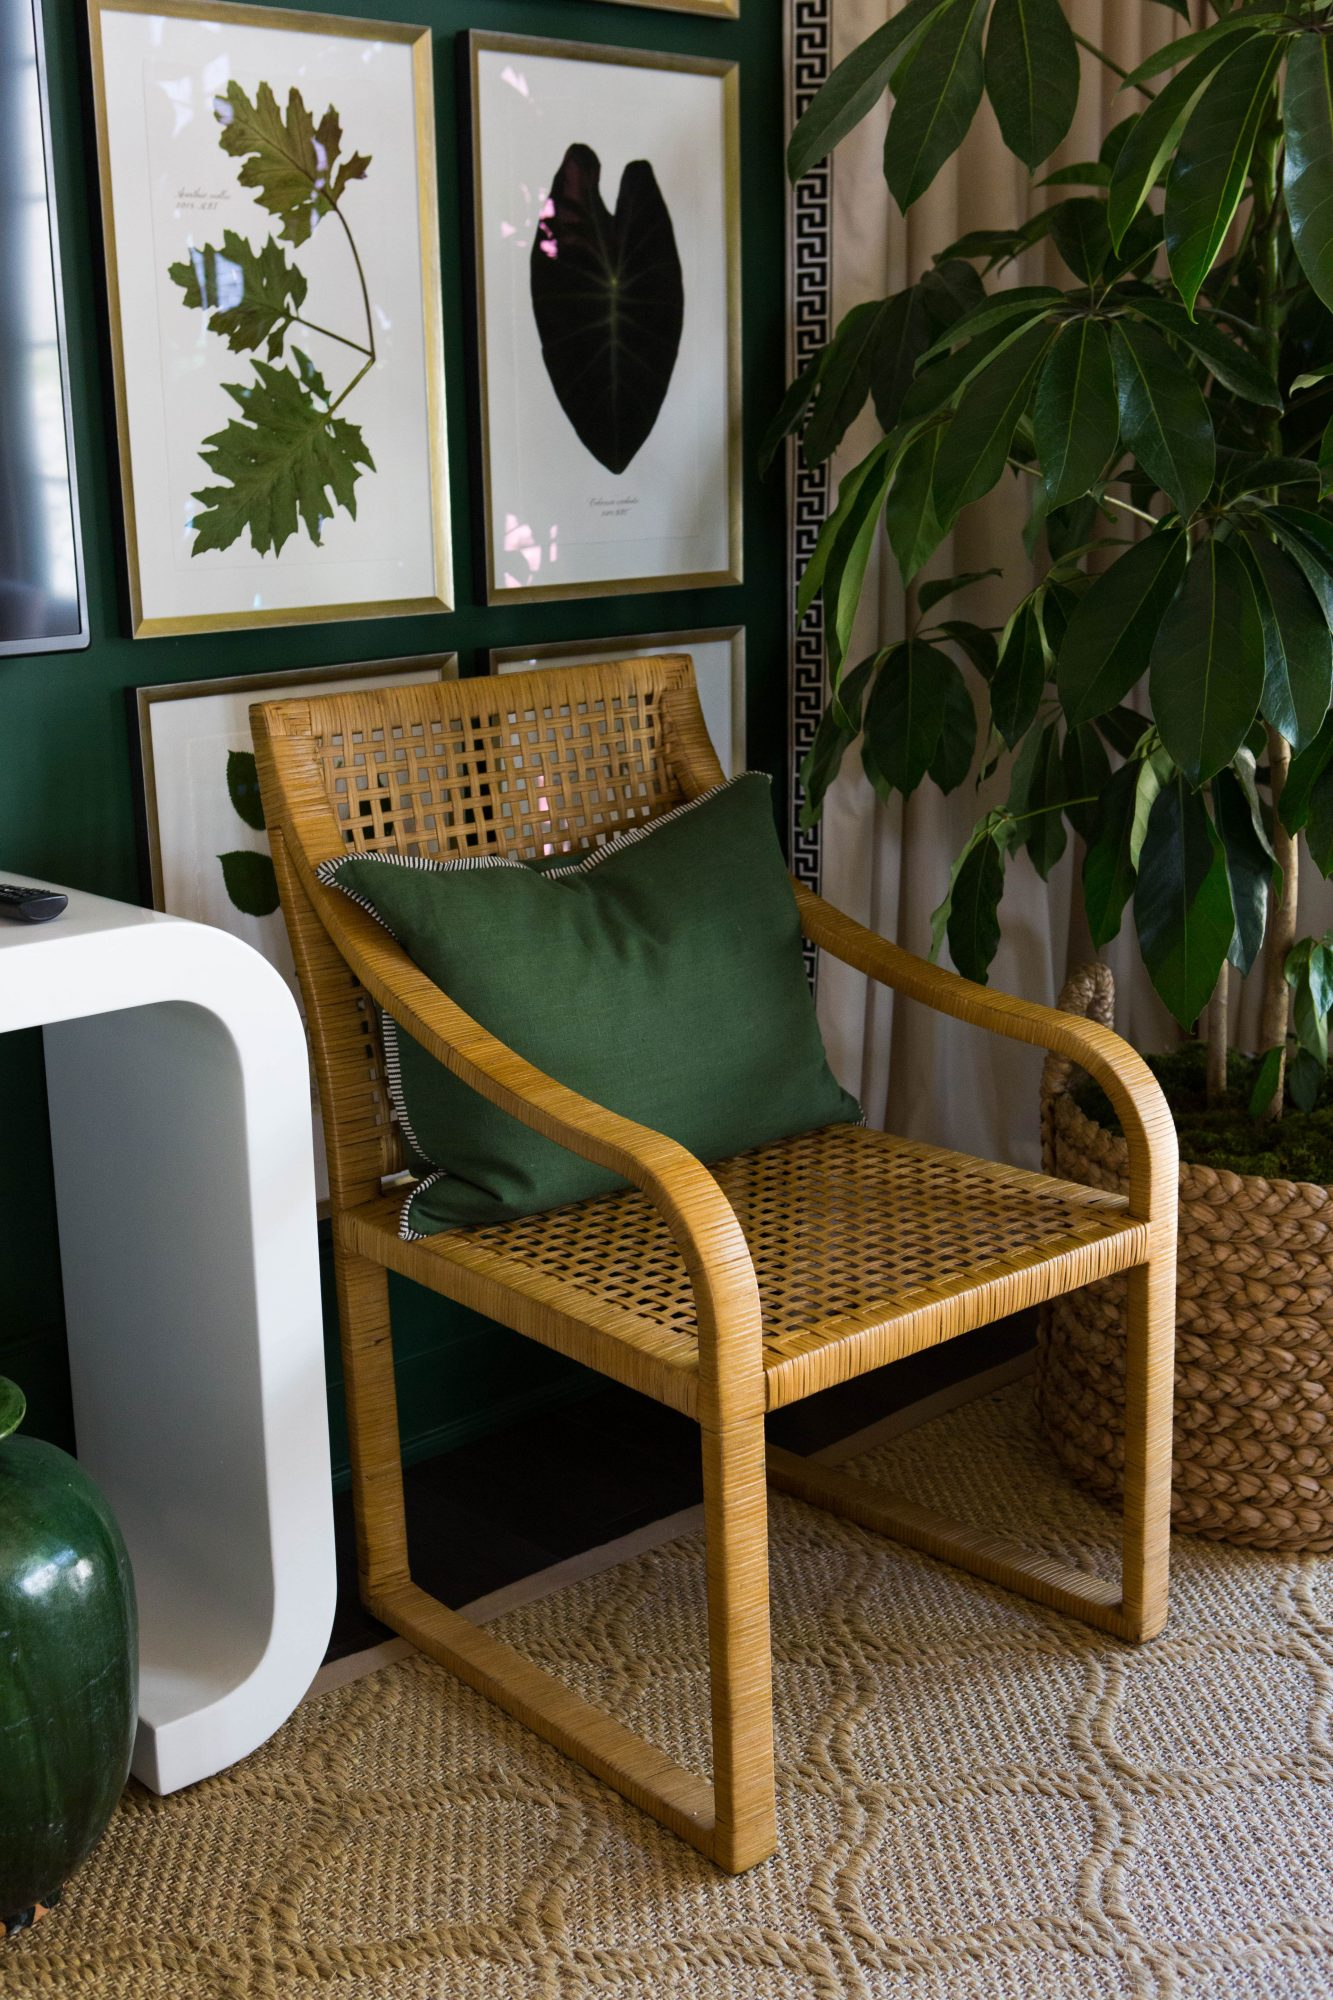 Woven Chair with Green Pilow